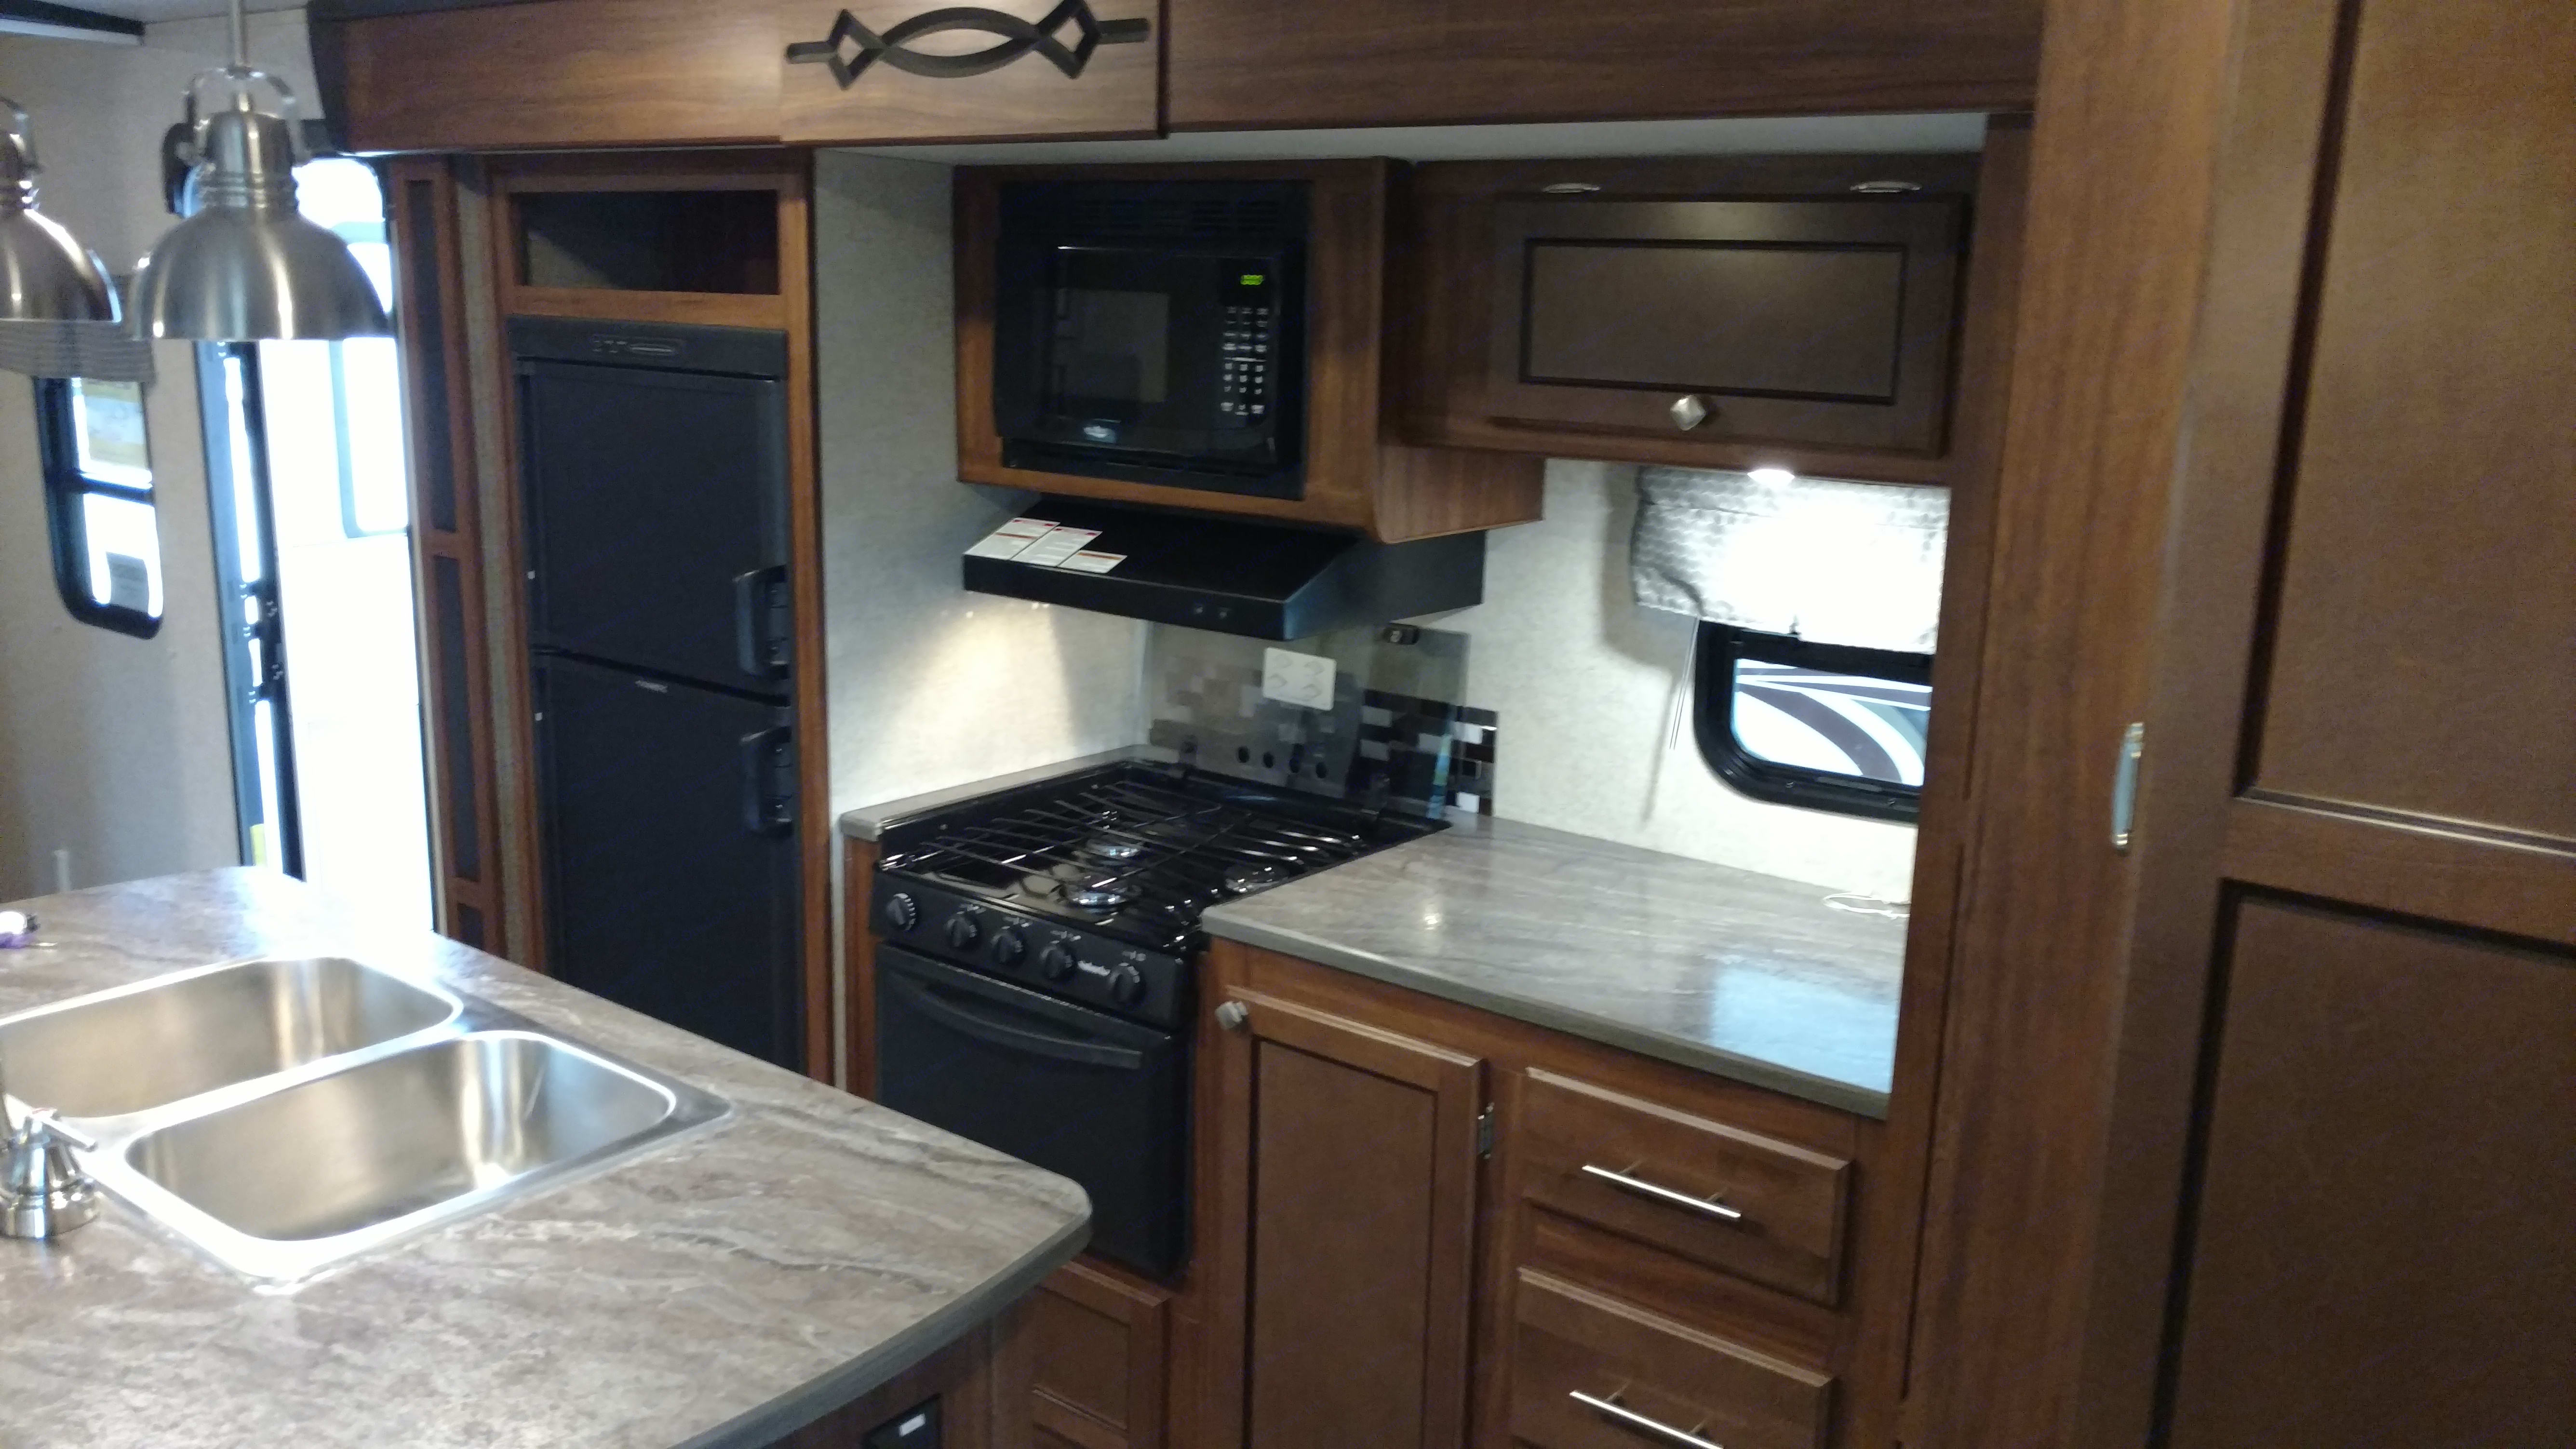 Kitchen, showing island sink, stove/oven, and refrigerator.. Heartland Other 2017